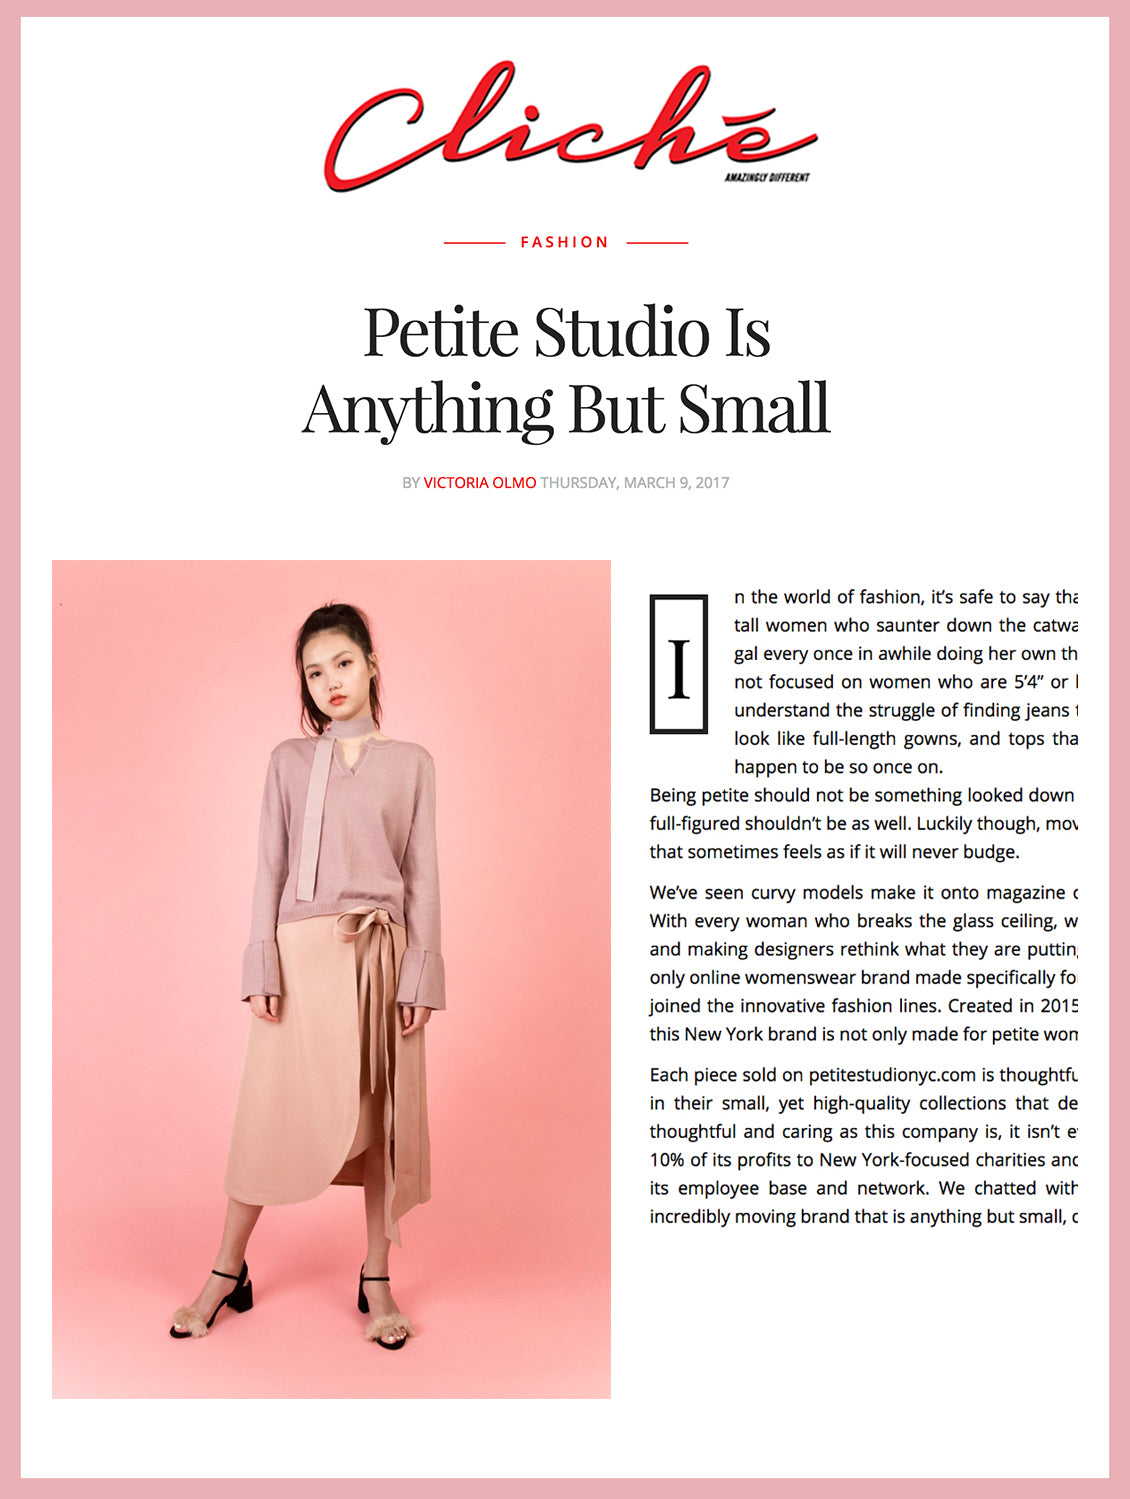 Petitestudio is anything  but small